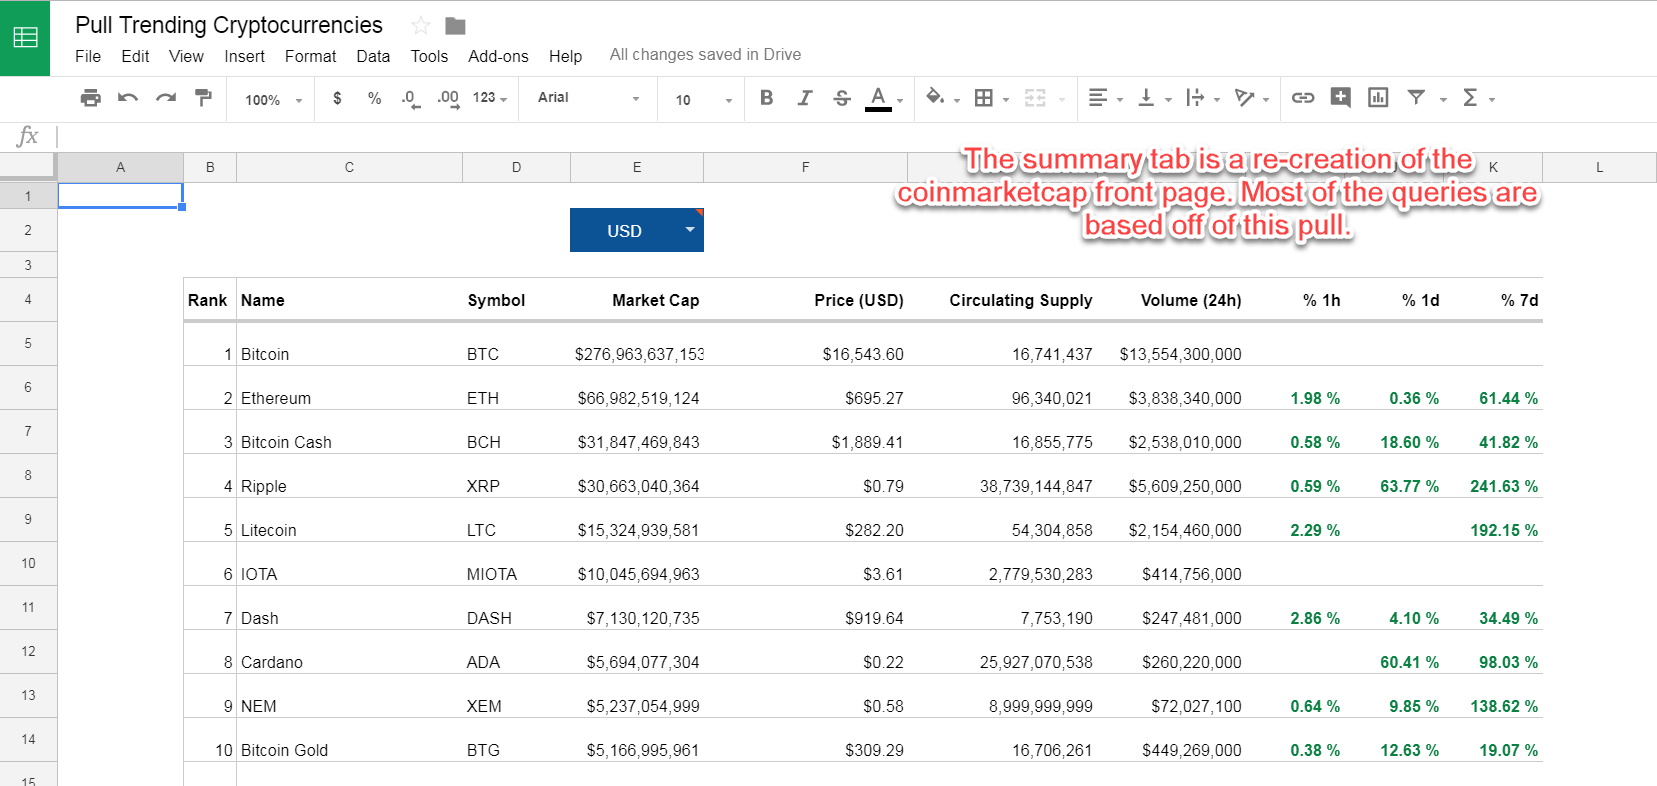 Crypto Trading Spreadsheet With Financial Modeling For Cryptocurrencies: The Spreadsheet That Got Me